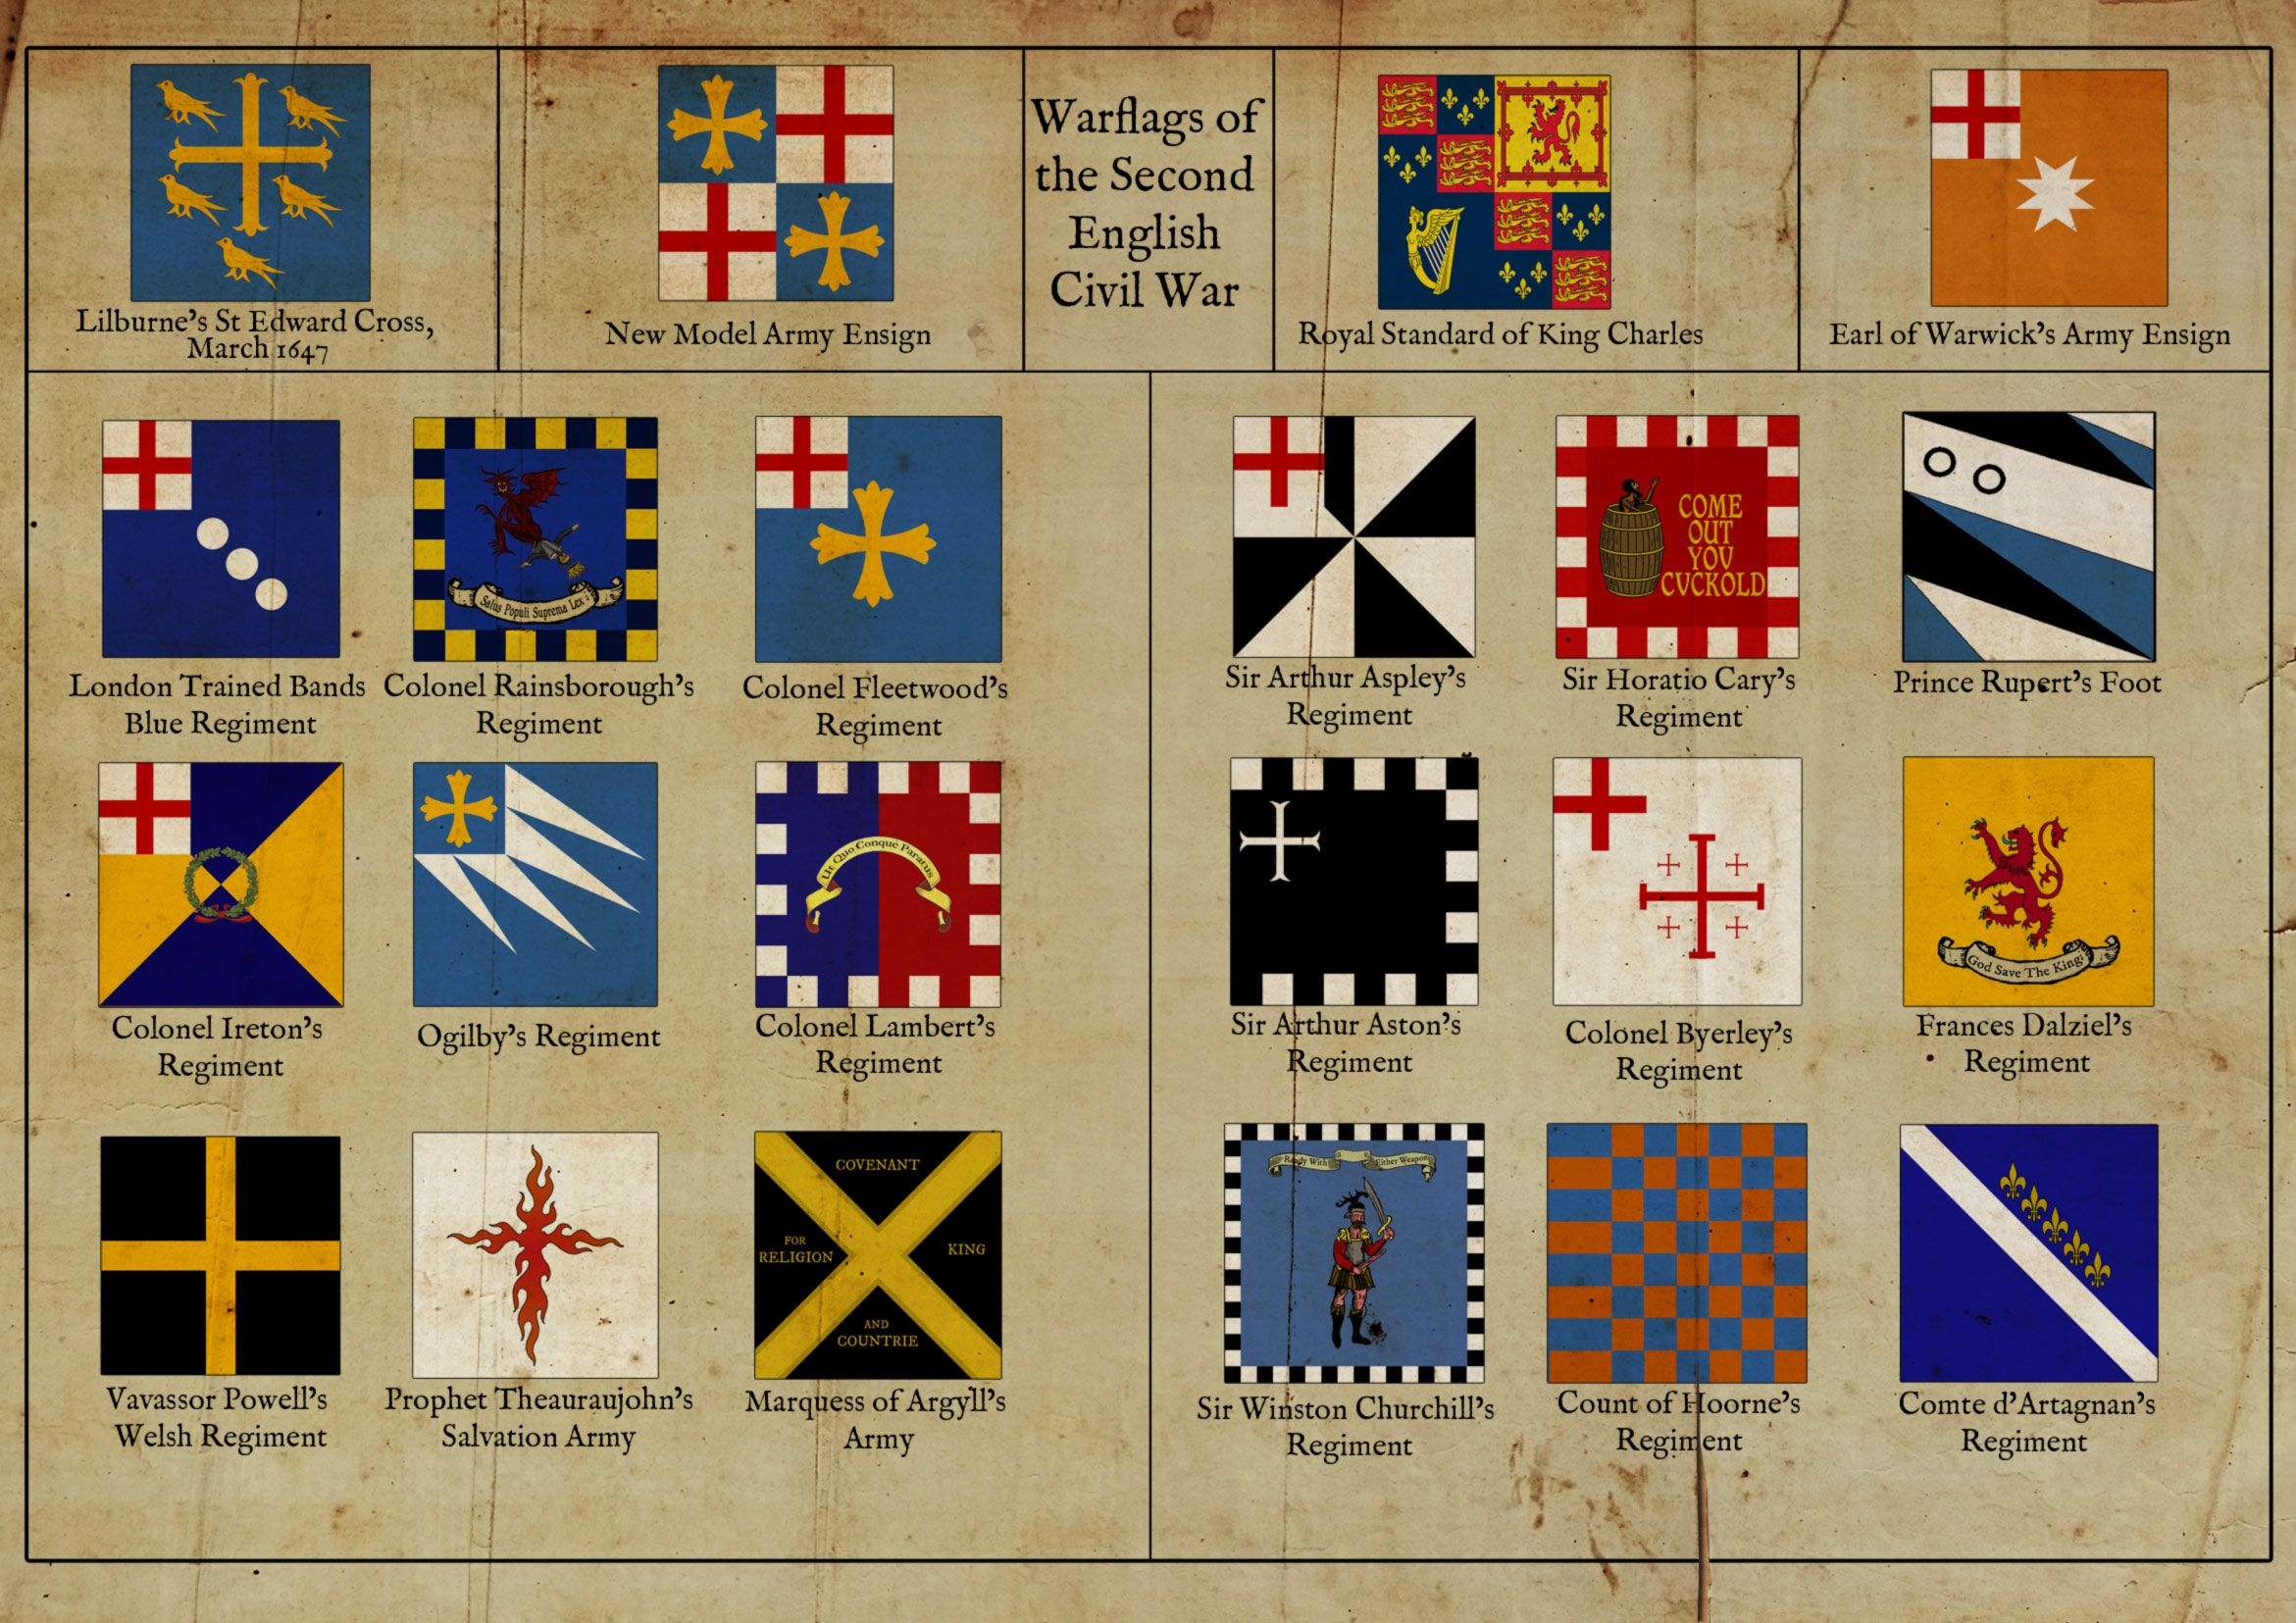 The english civil war all except the trumpet banner are royalist the english civil war all except the trumpet banner are royalist michael roffe pike and shot pinterest civil wars english and history biocorpaavc Choice Image